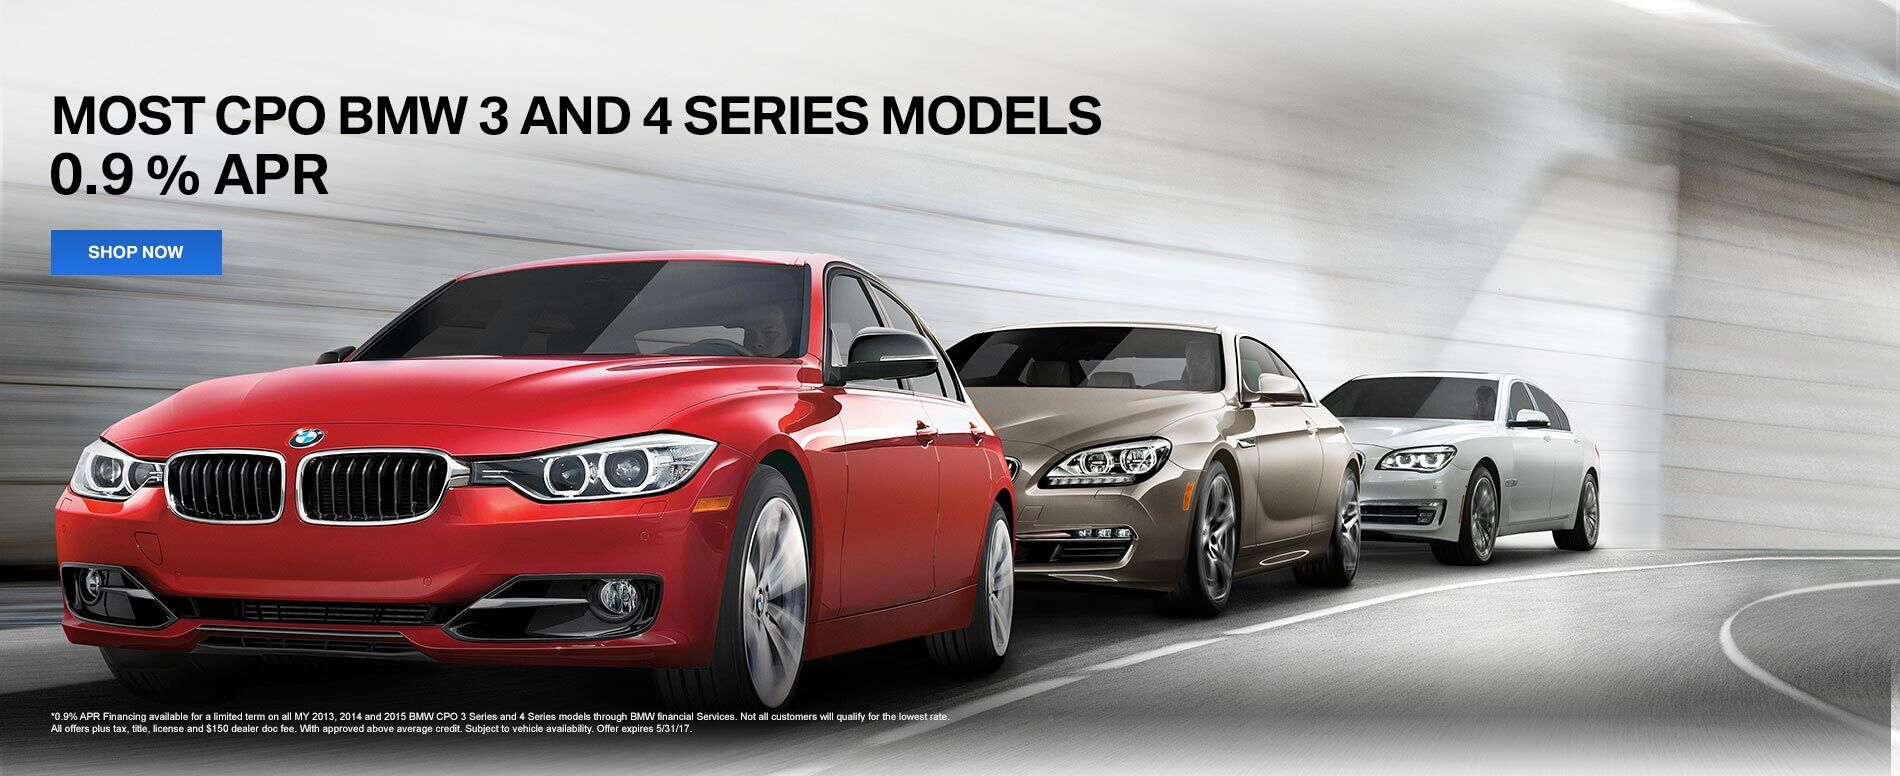 Most CPO BMW 3 and 4 series